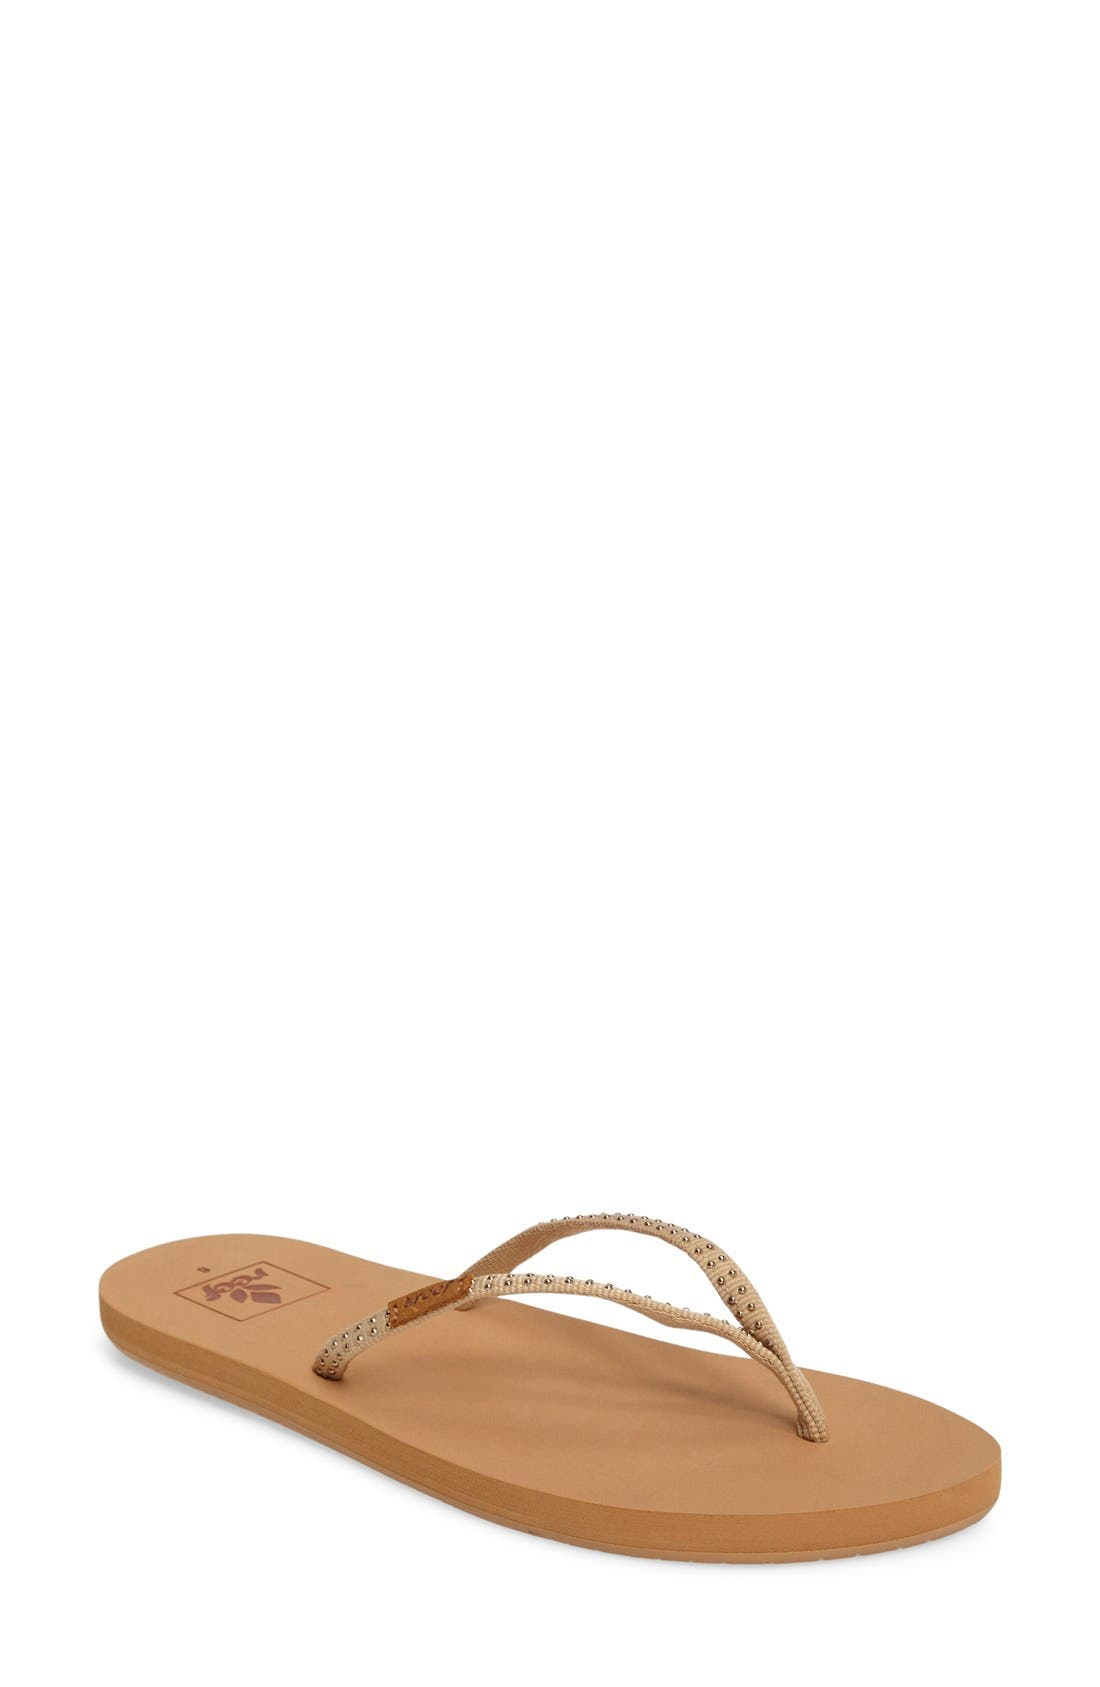 Reef Slim Ginger Stud Flip-Flop (Women)